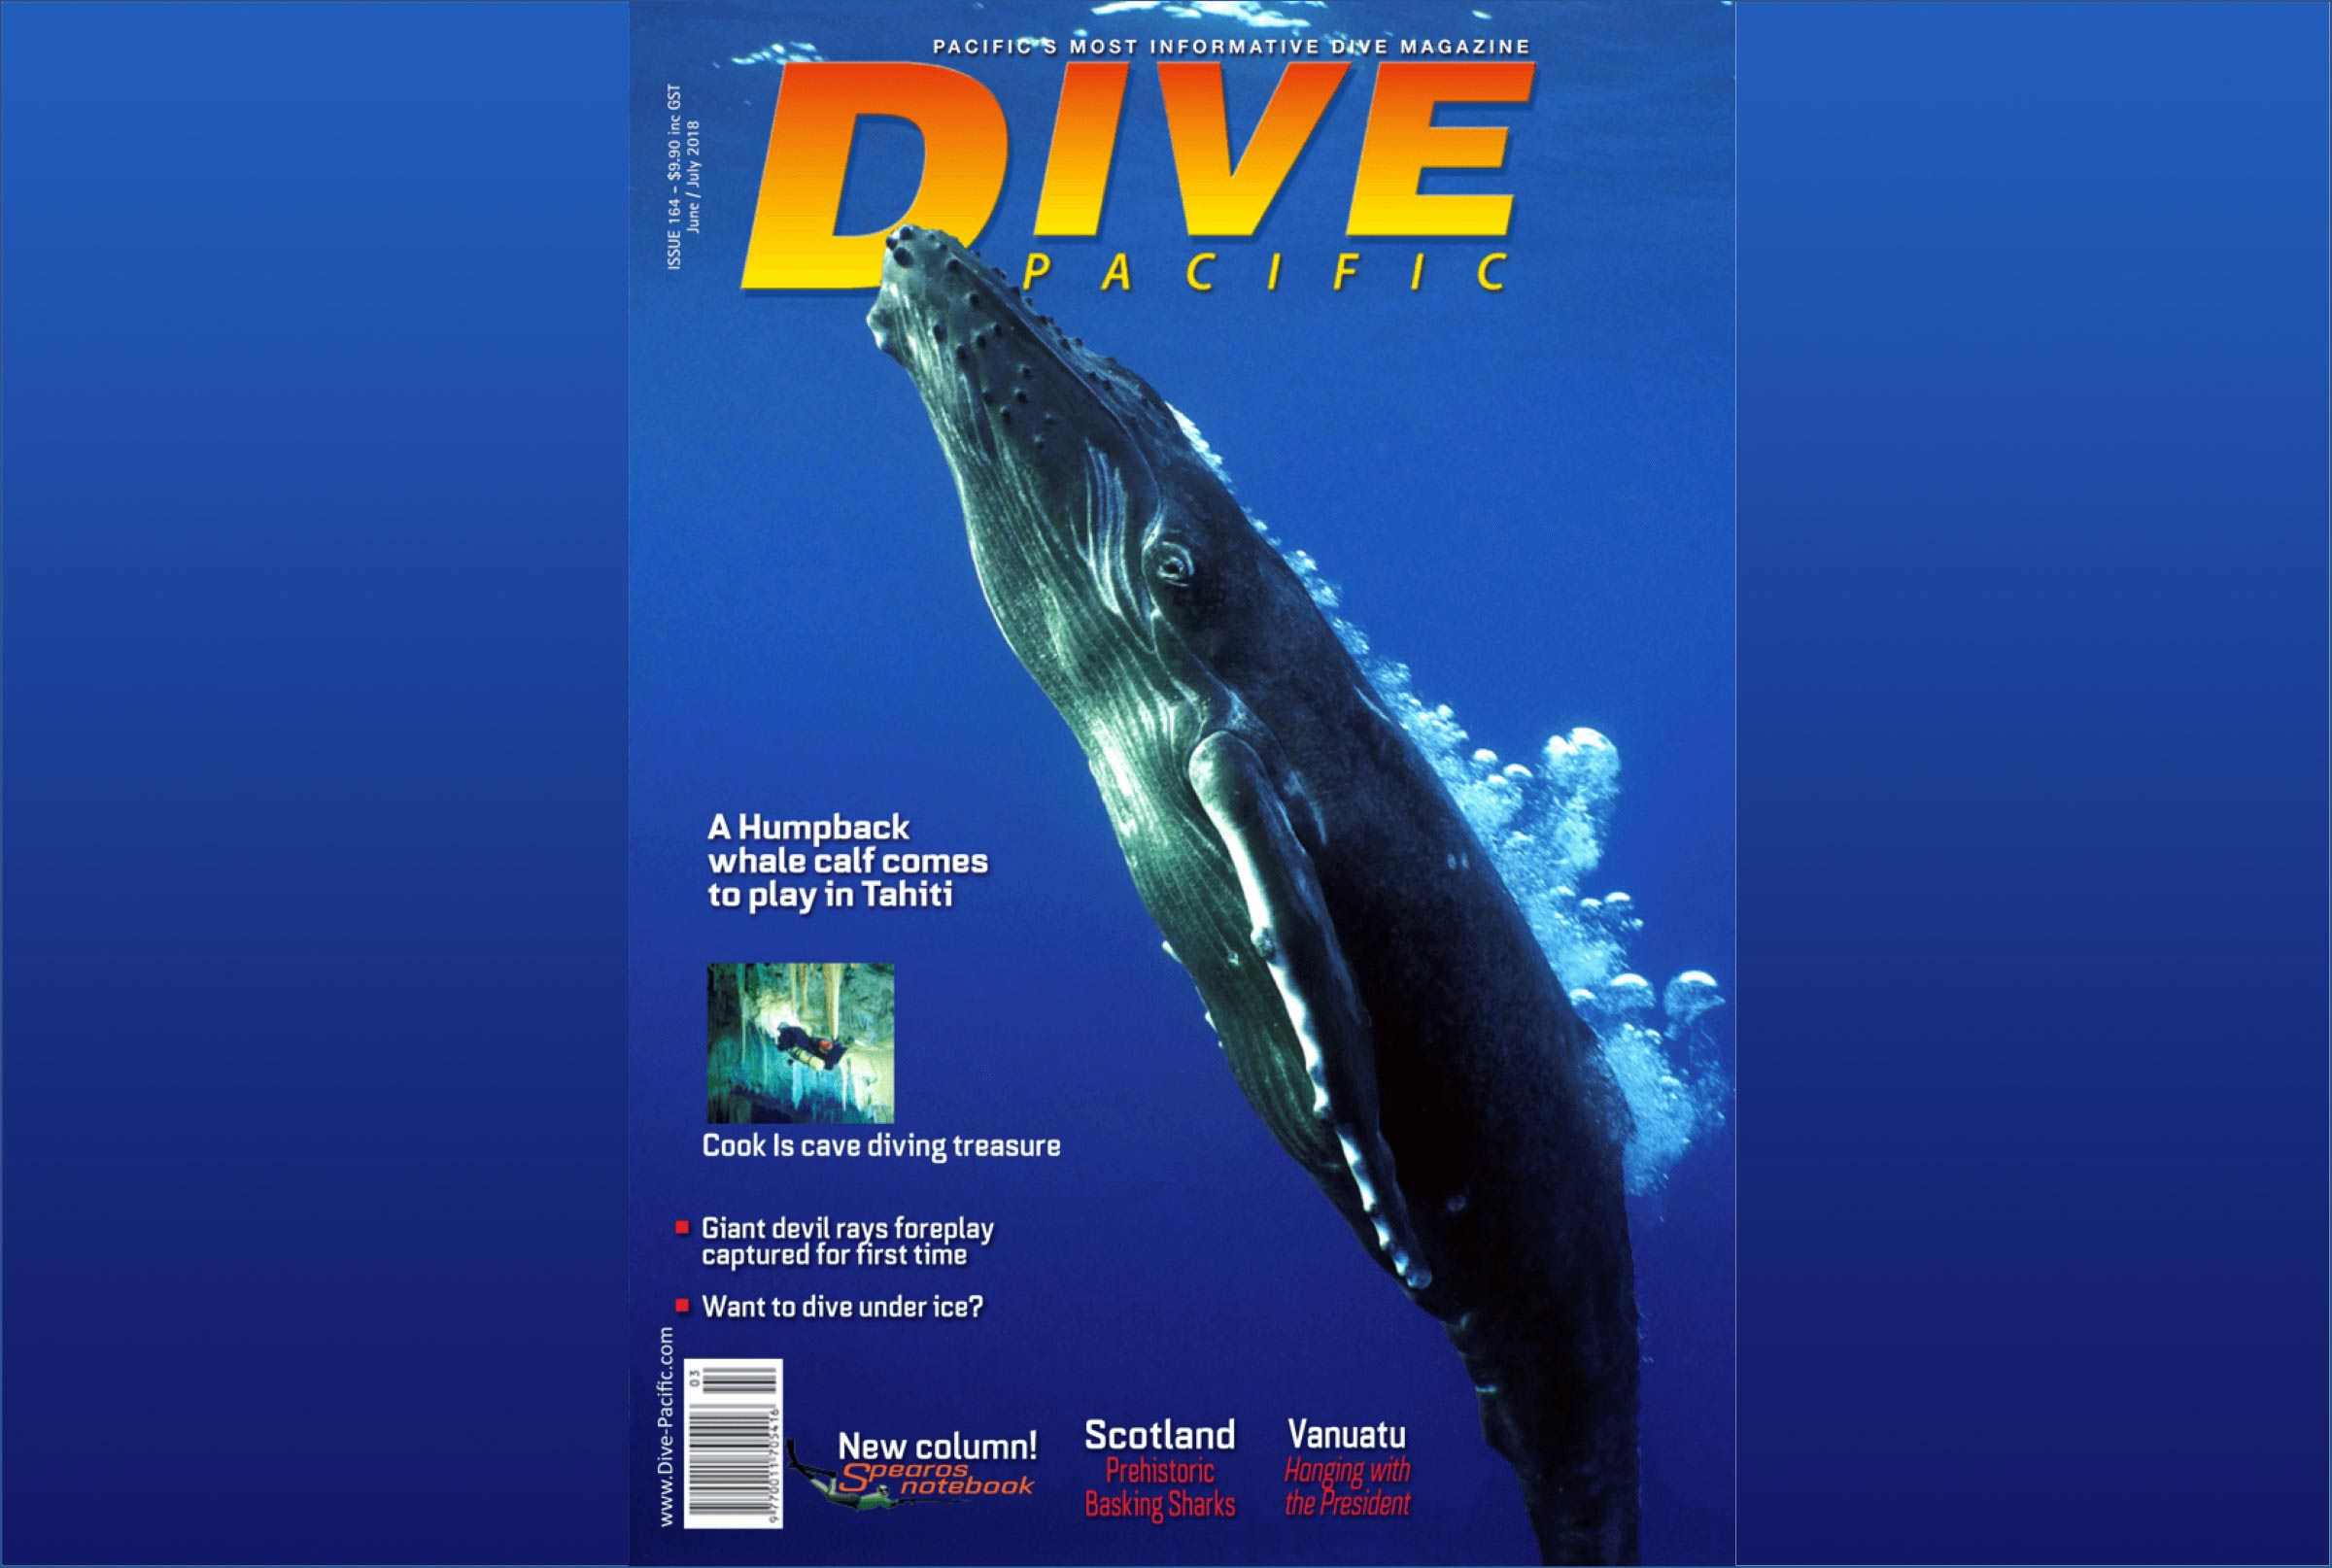 Big New Future Being Mapped for Dive Pacific, New Zealand's Dive Magazine